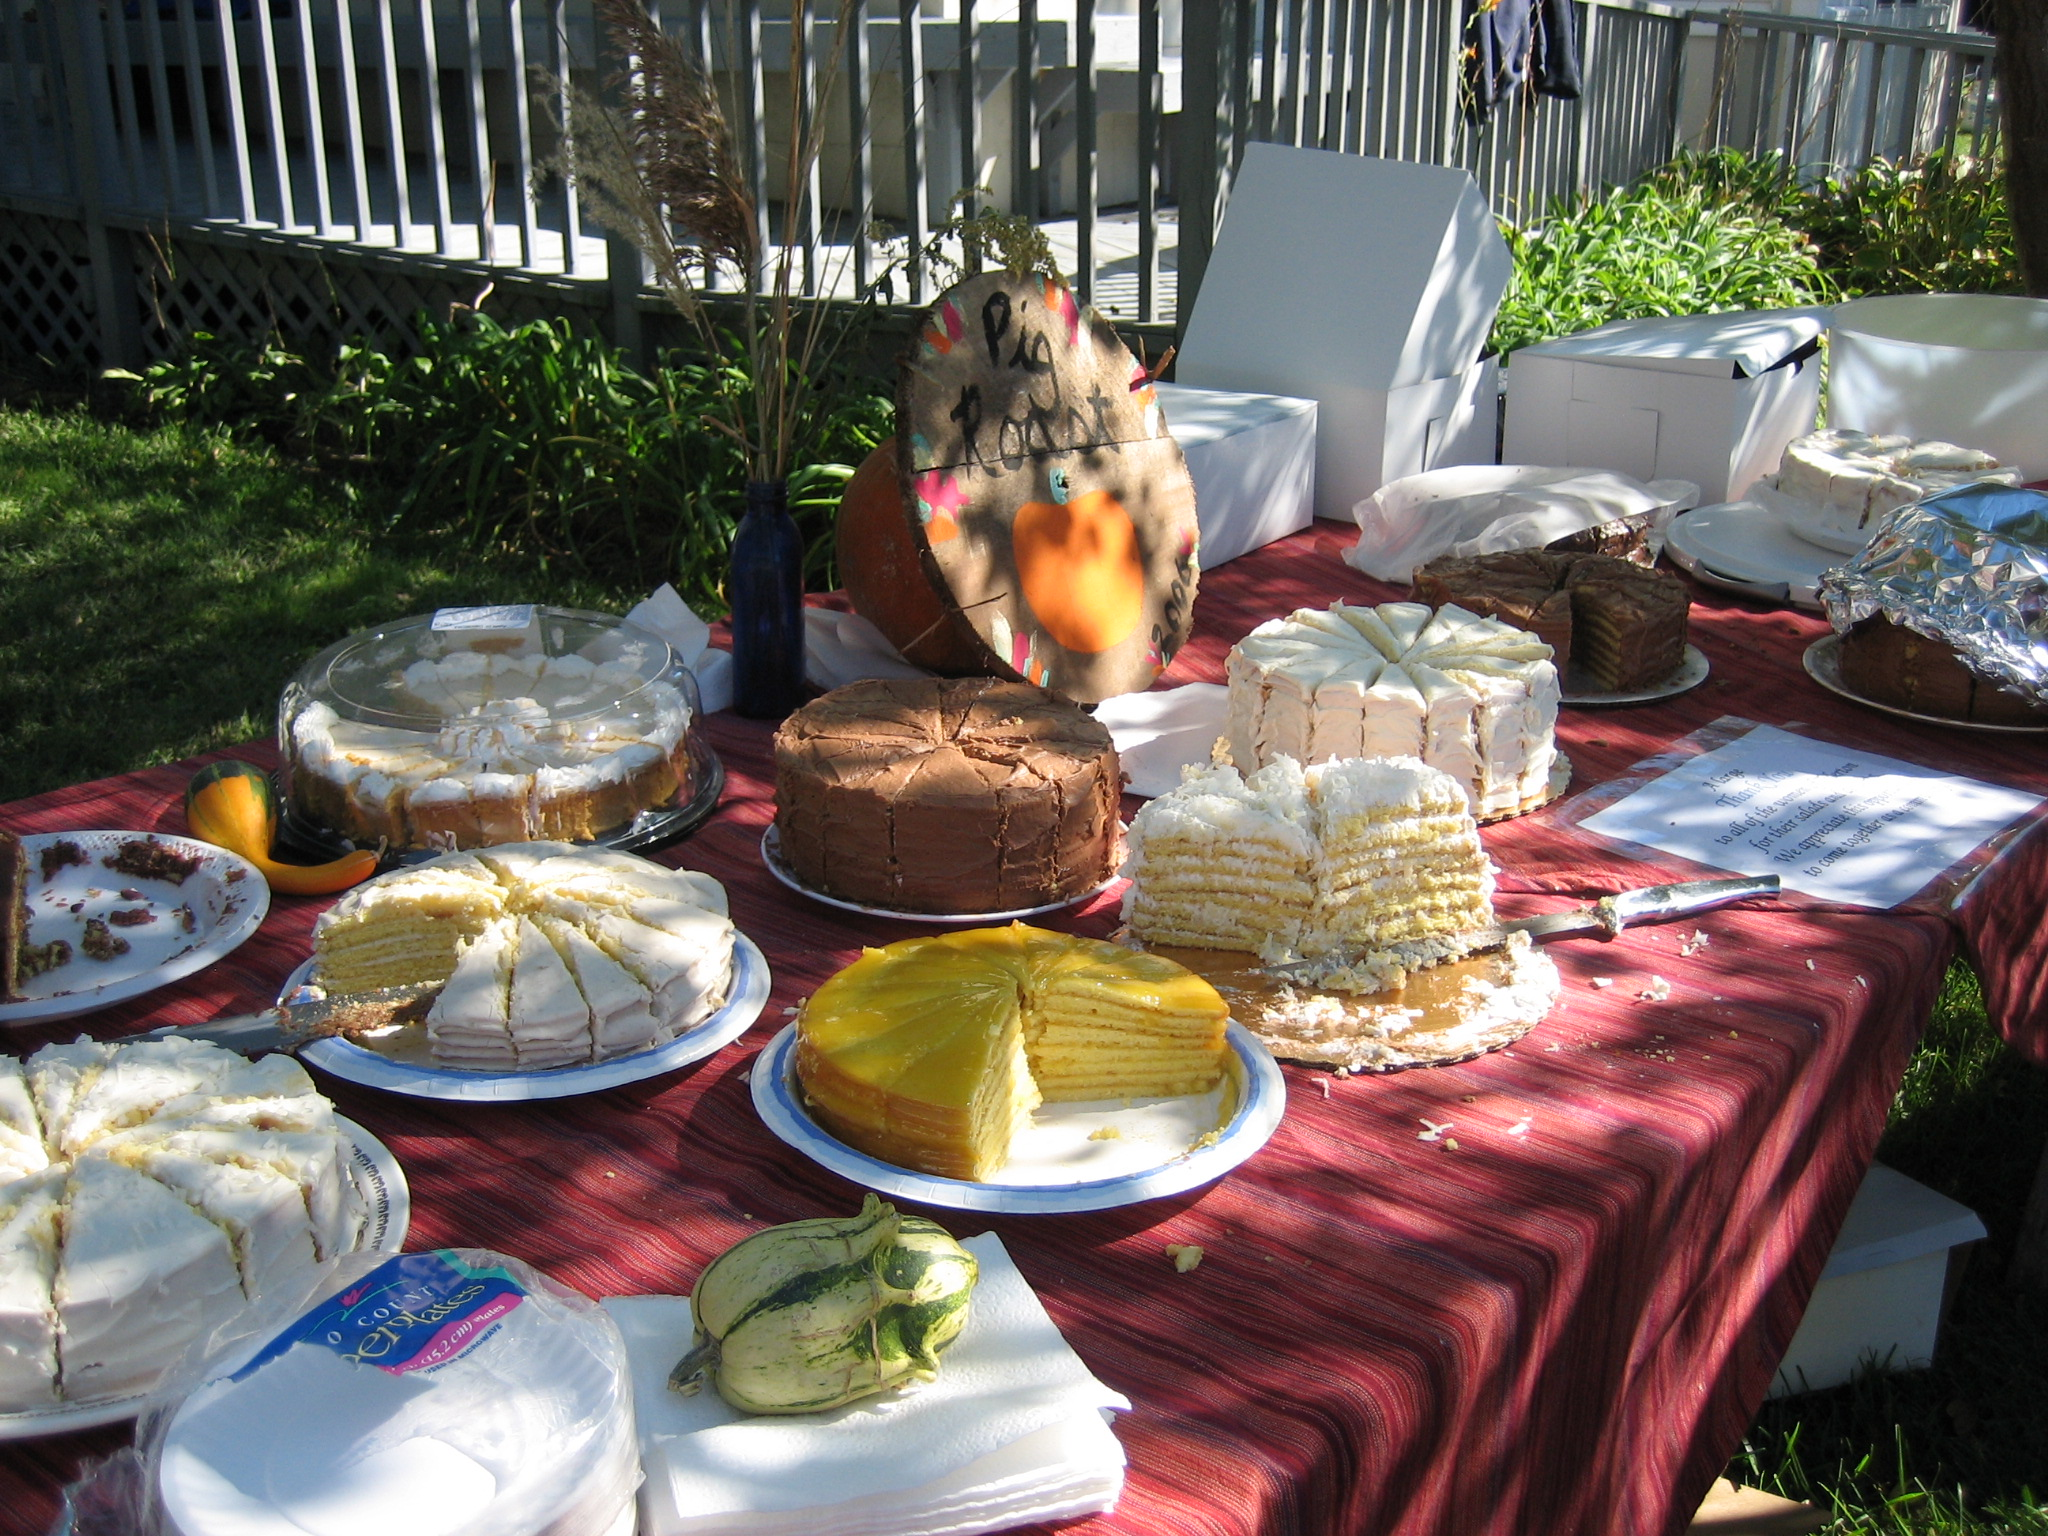 Table at a community picnic covered in cakes.